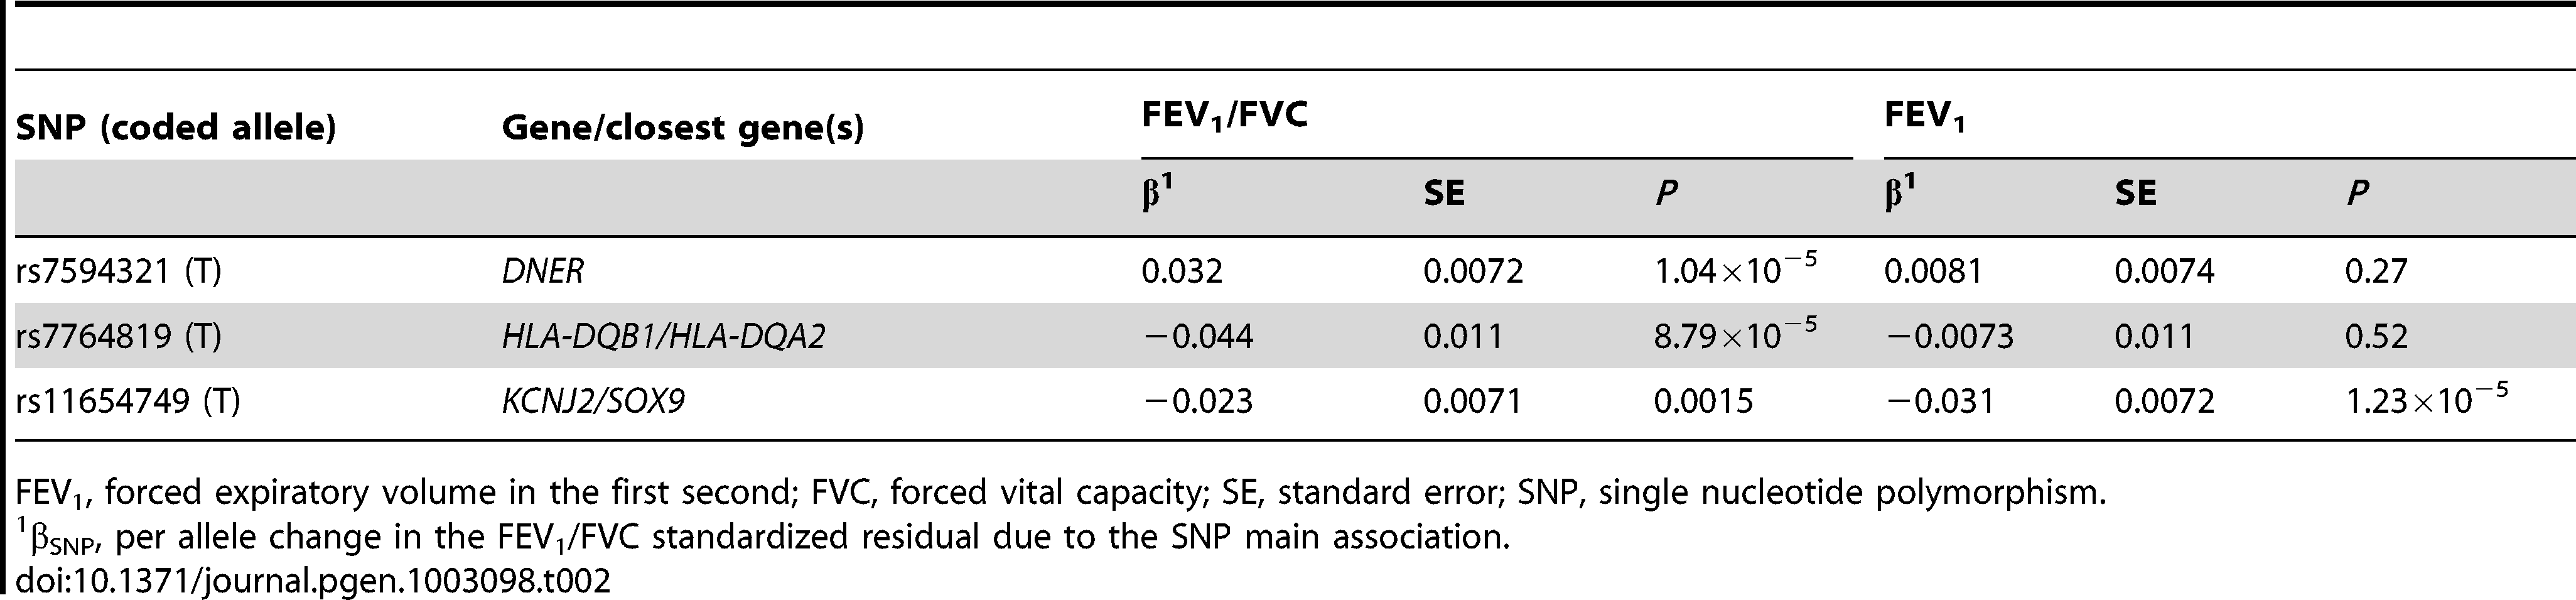 Look-up evaluation of SNP main associations with FEV<sub>1</sub>/FVC and FEV<sub>1</sub> using data generated by our previous genome-wide association study meta-analysis (N=48,201), for the most significant SNP from each of the three novel loci implicated at genome-wide significance in the joint meta-analysis.